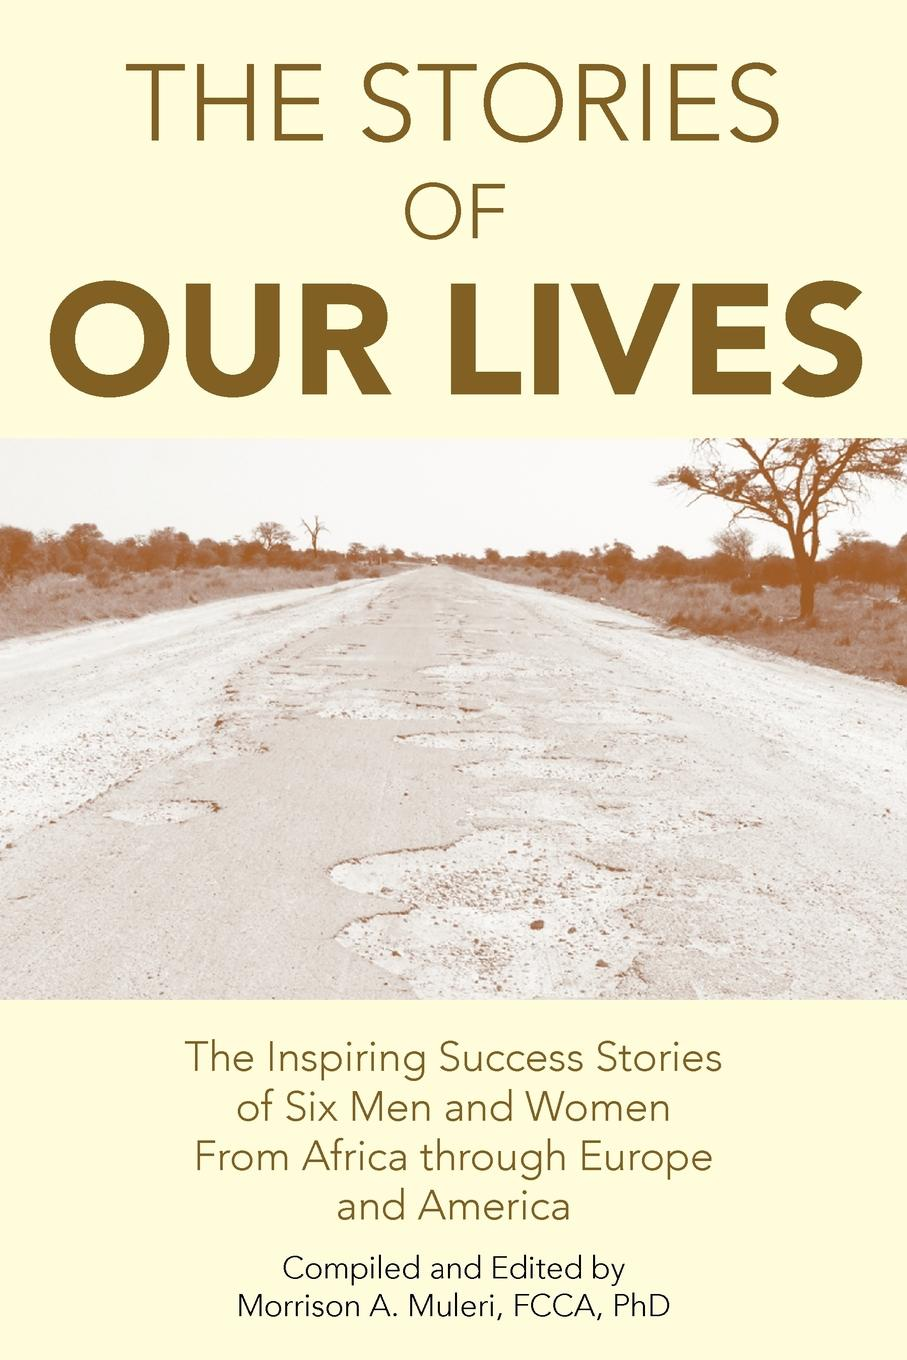 Morrison A. Fcca Muleri Phd The Stories of Our Lives. The Inspiring Success Stories of Six Men and Women from Africa Through Europe and America hadley milton stories about famous men and women of our great country containing the lives of almost fifty of our nations heroes and heroines